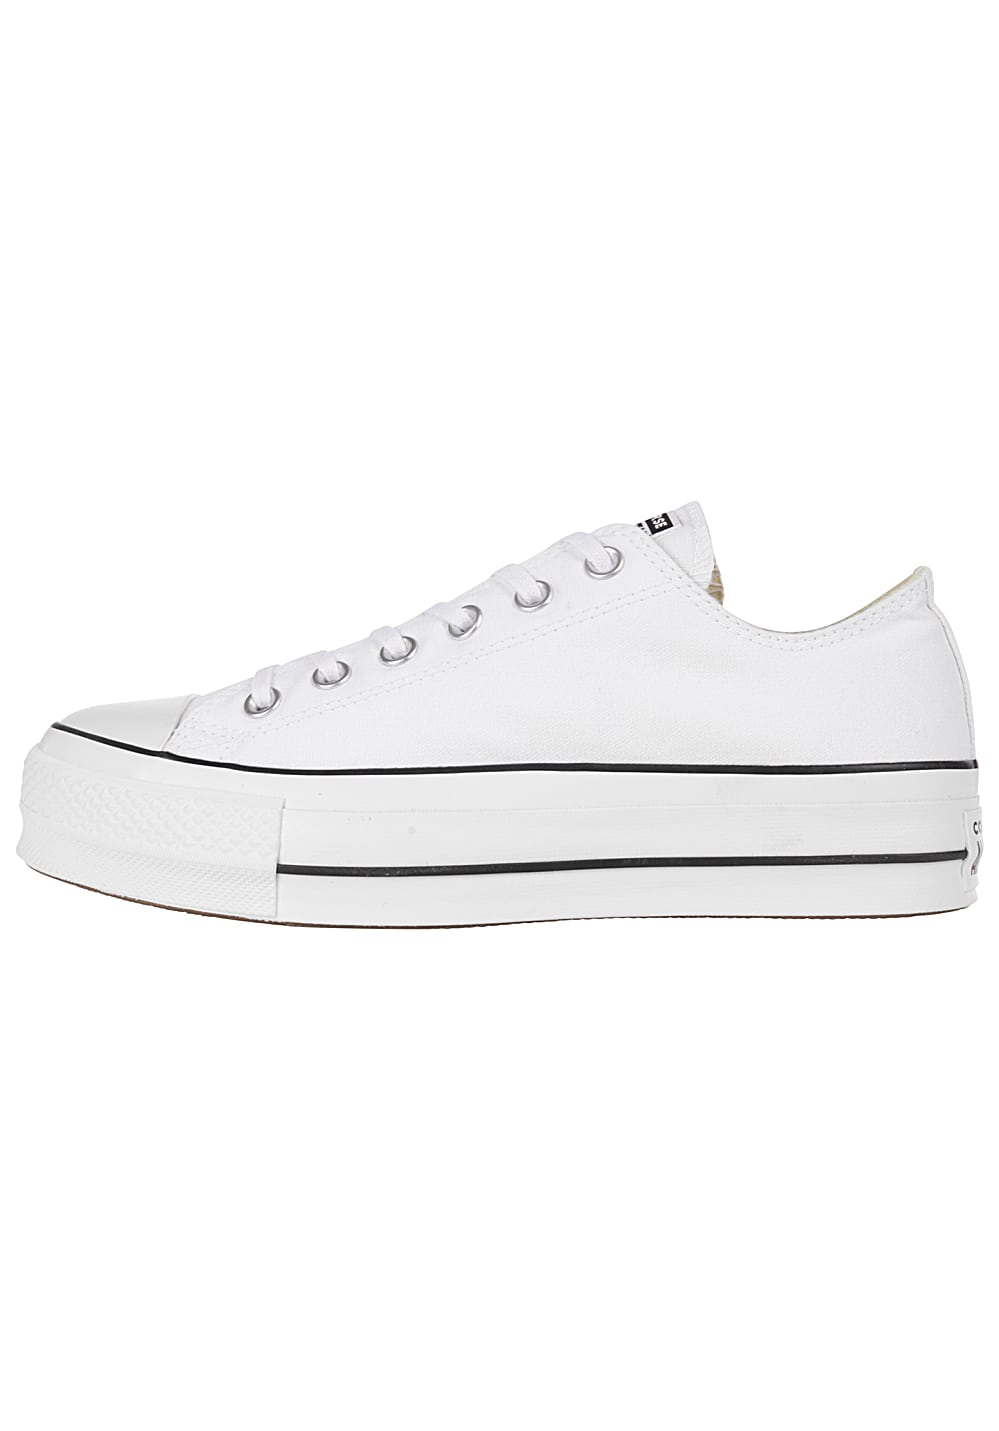 Converse Chuck Taylor All Star Lift whiteblackwhite ab 56